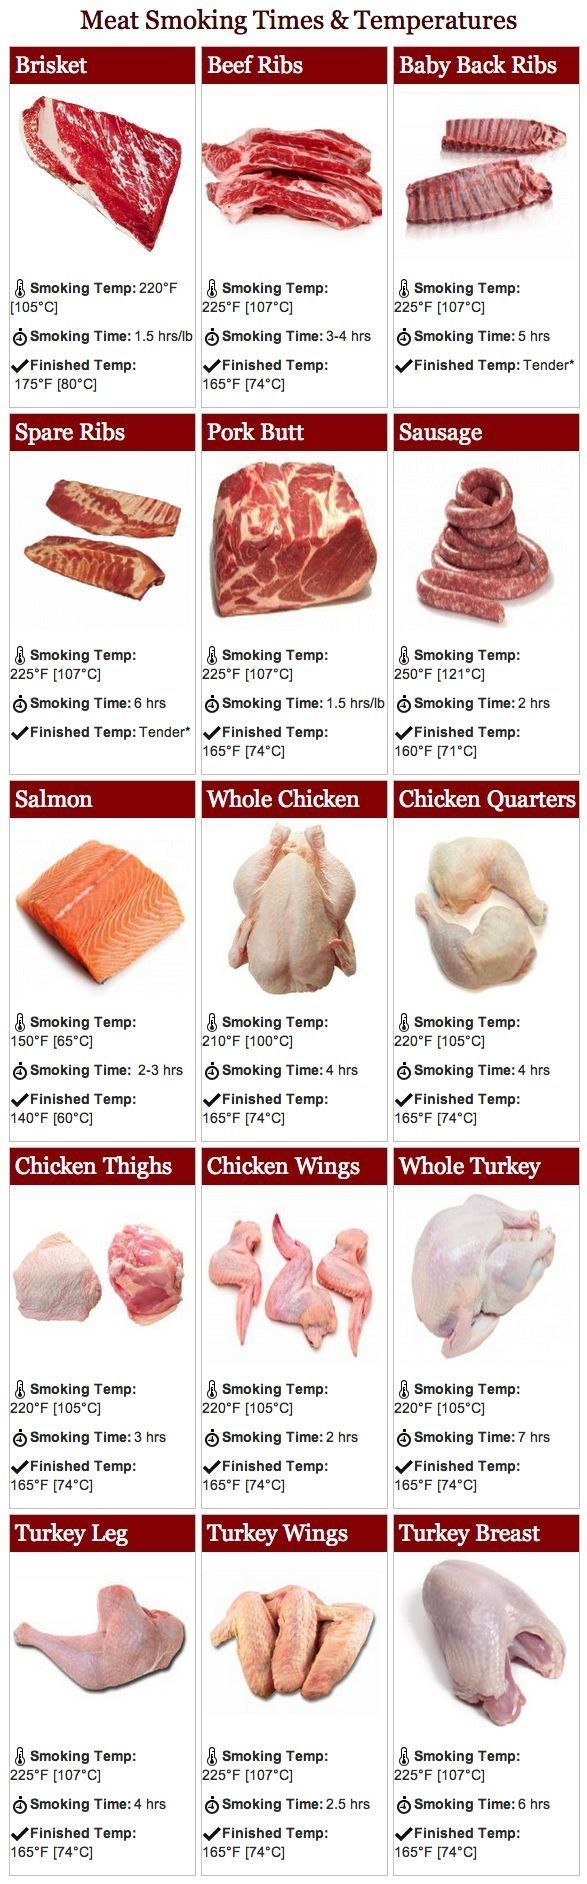 A handy temperature guide for just about any meat you might be grilling or smoking: chicken, pork, beef and all sorts of different cuts.